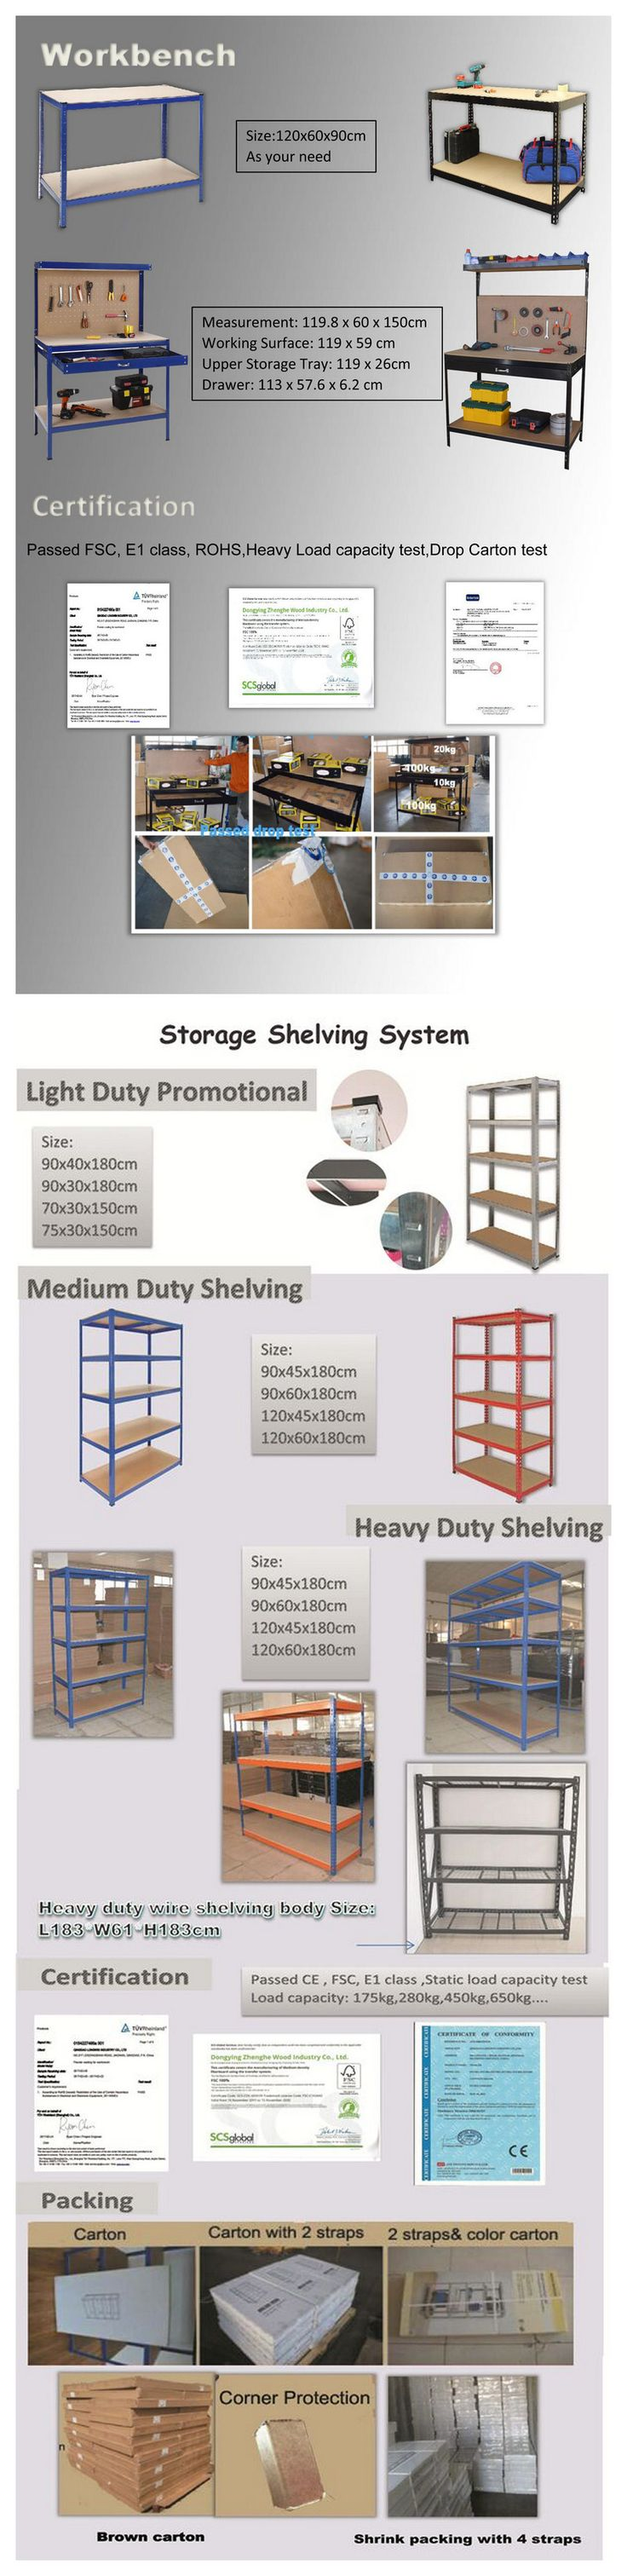 Best 25+ Boltless shelving ideas on Pinterest